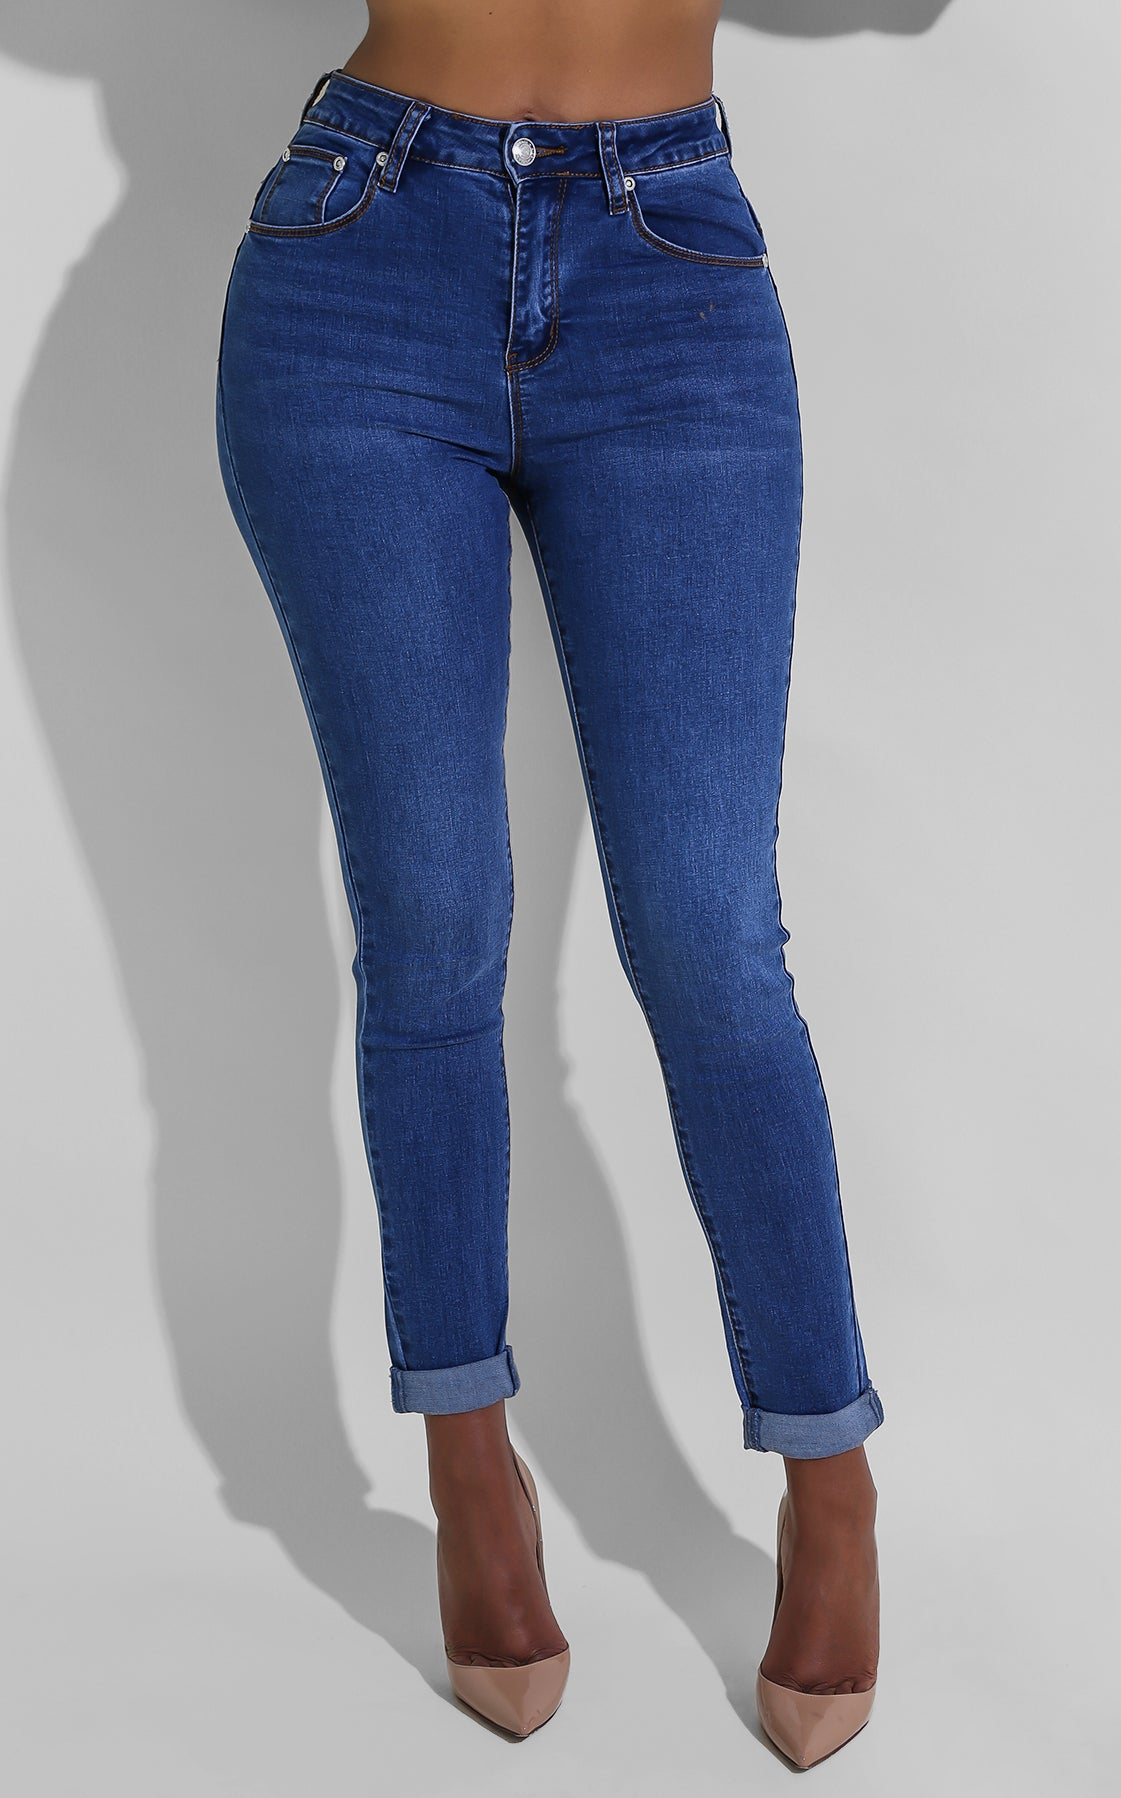 The Basic Need Denim